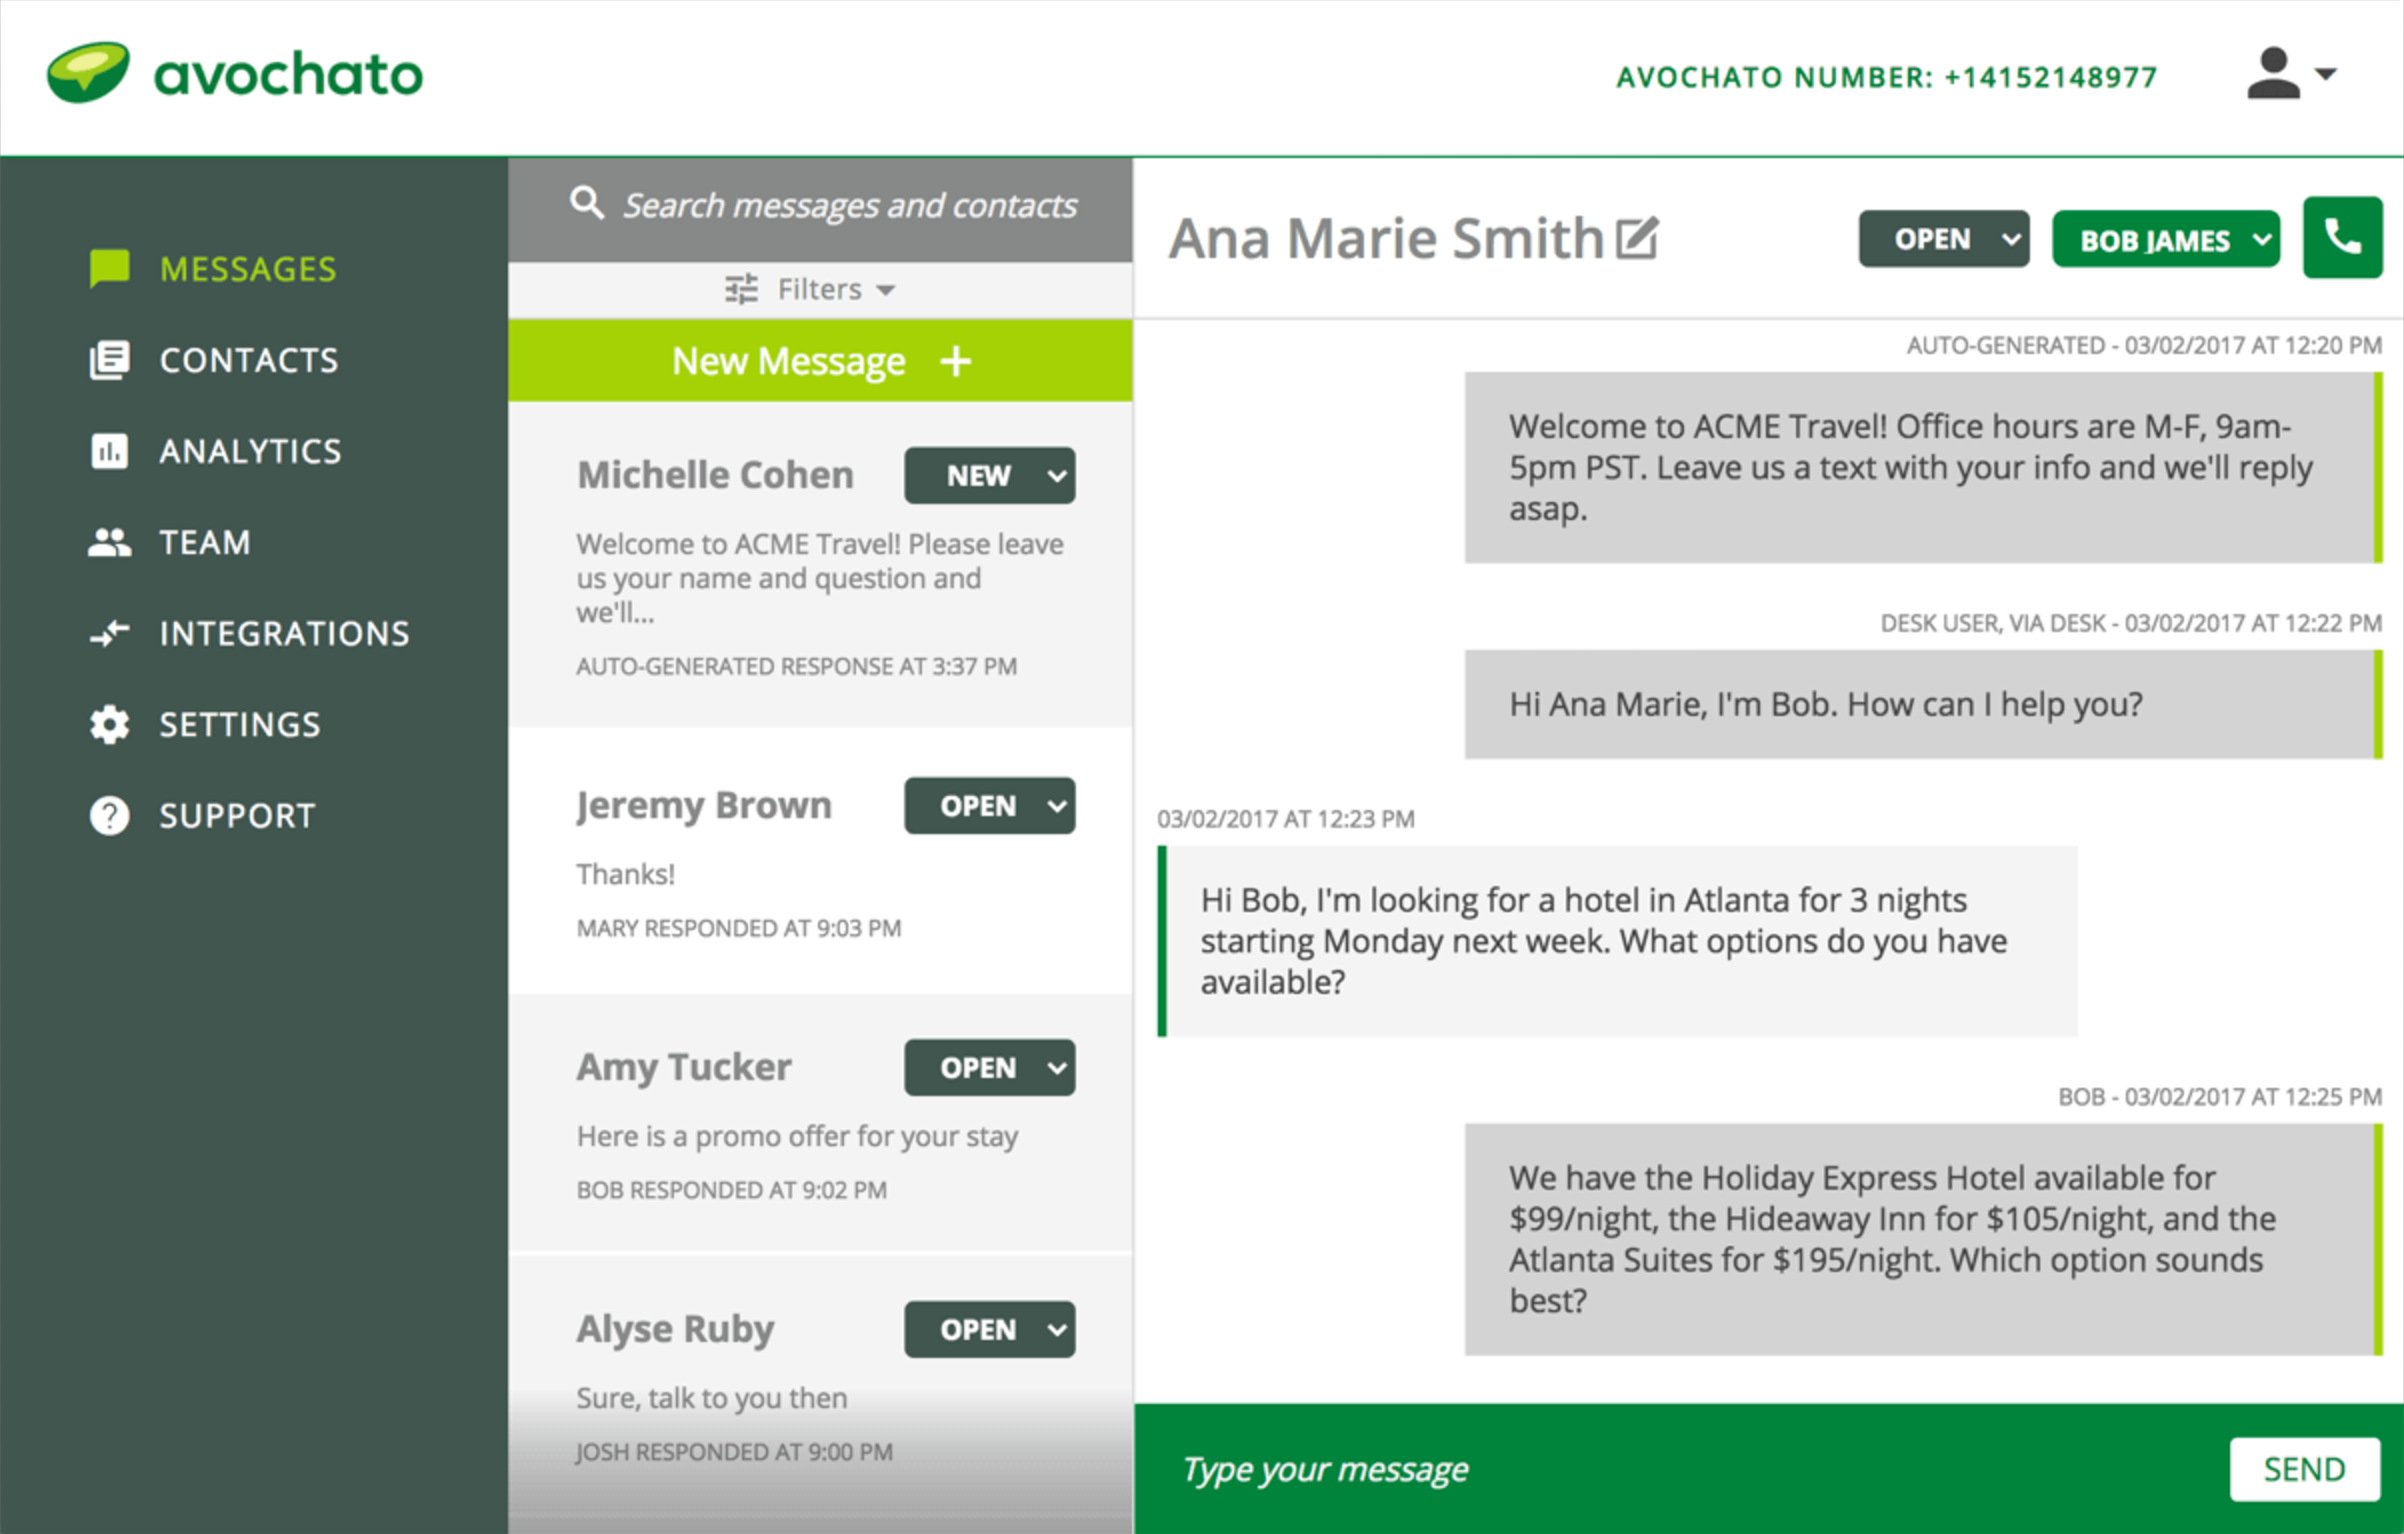 All messages are displayed in the web dashboard